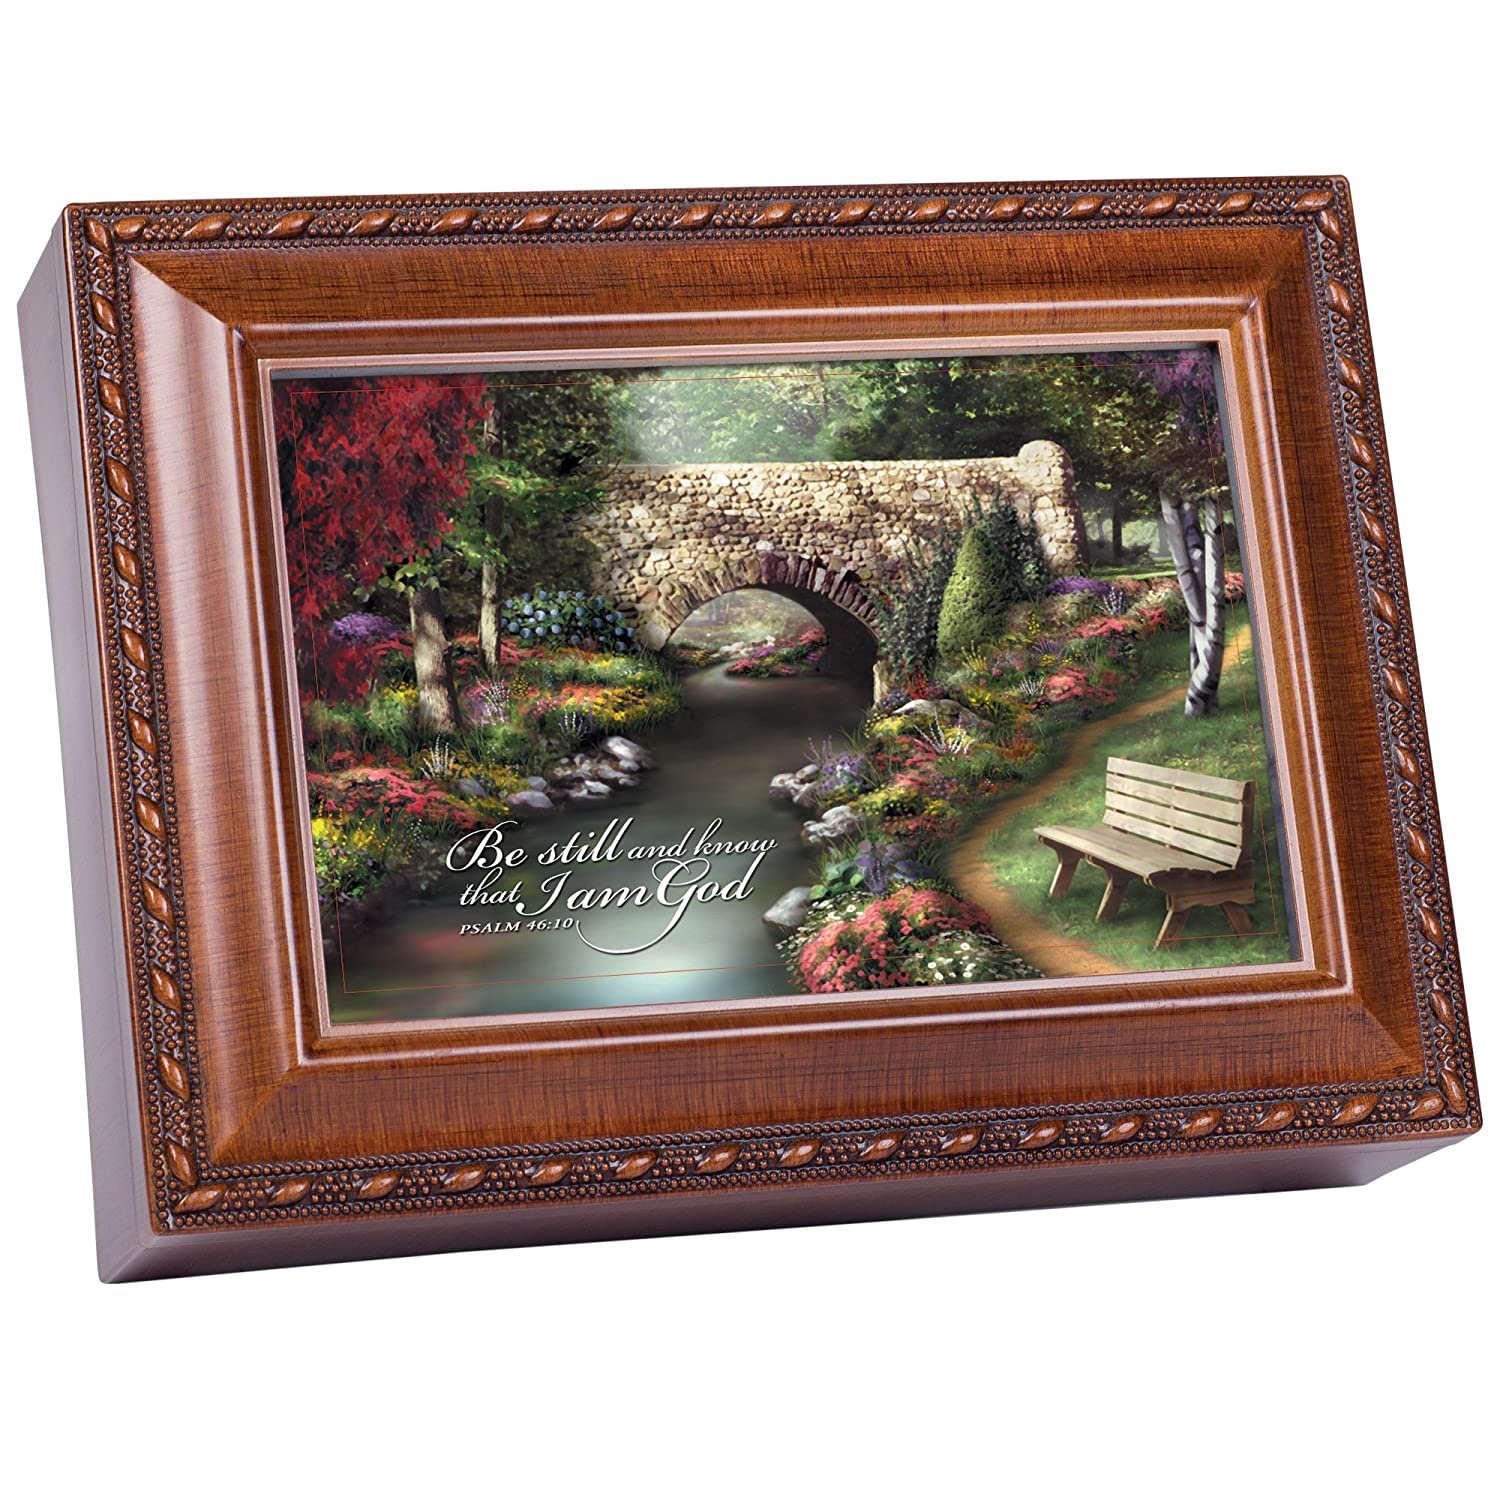 Cottage Garden Be Still Inspirational Woodgrain Traditional Music Box Plays Amazing Grace